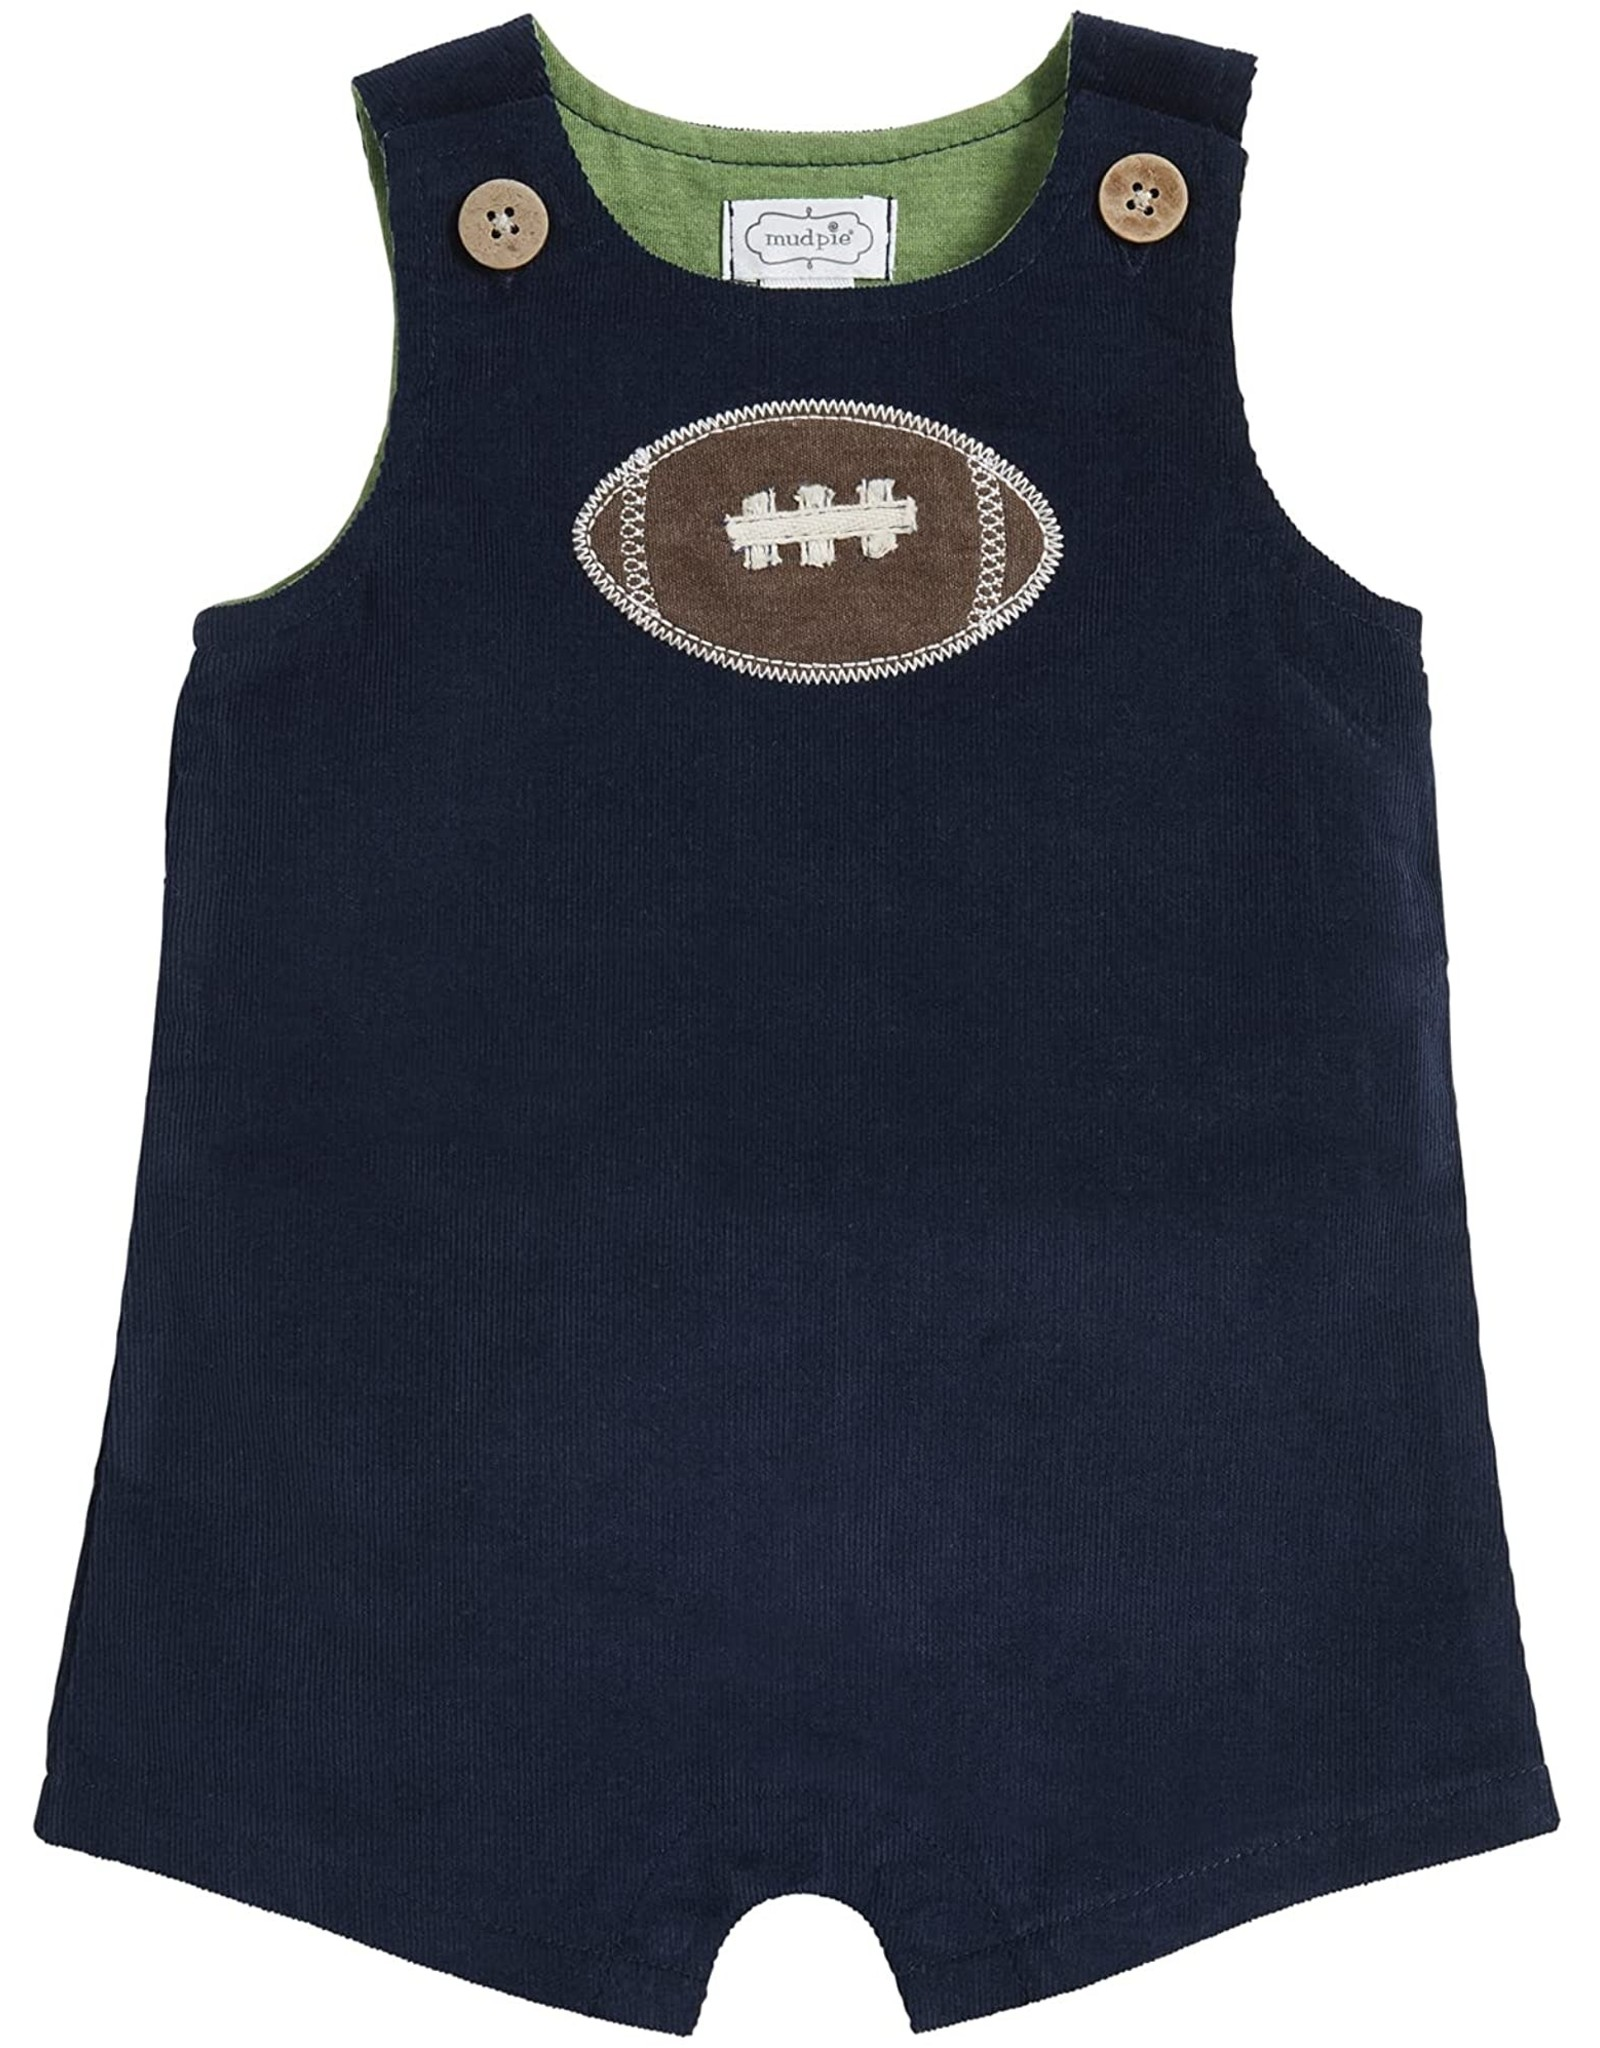 Mud Pie Baby N Kids Clothing One-Piece Football Shortall 6-9 Months